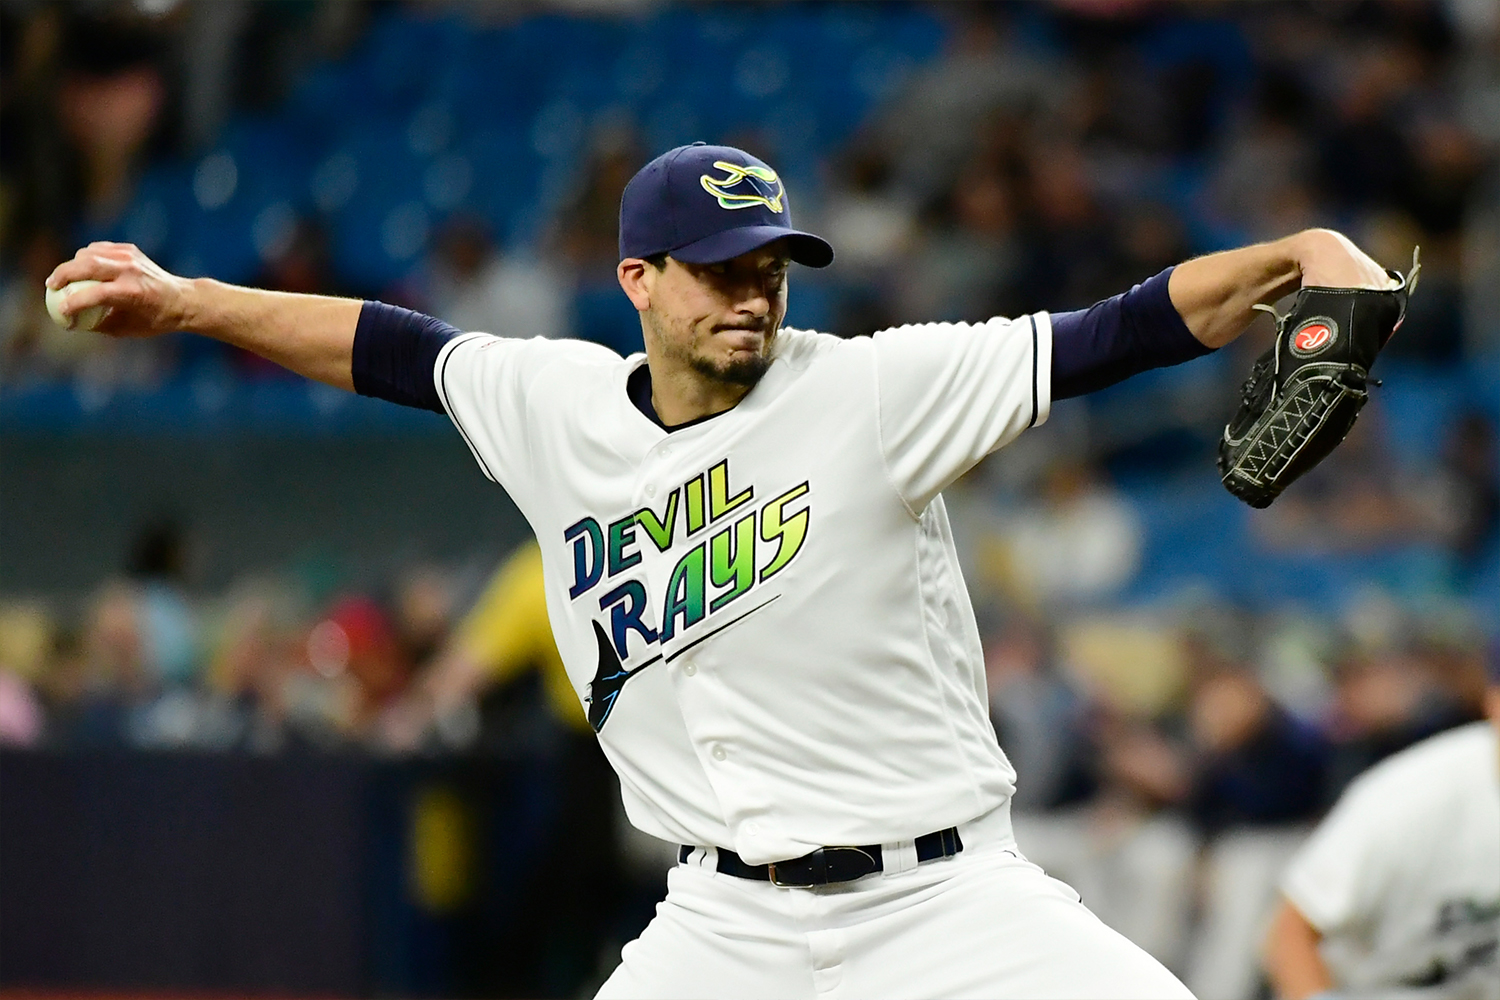 Charlie Morton #50 of the Tampa Bay Rays delivers a pitch in the first inning against the Boston Red Sox at Tropicana Field on April 20, 2019